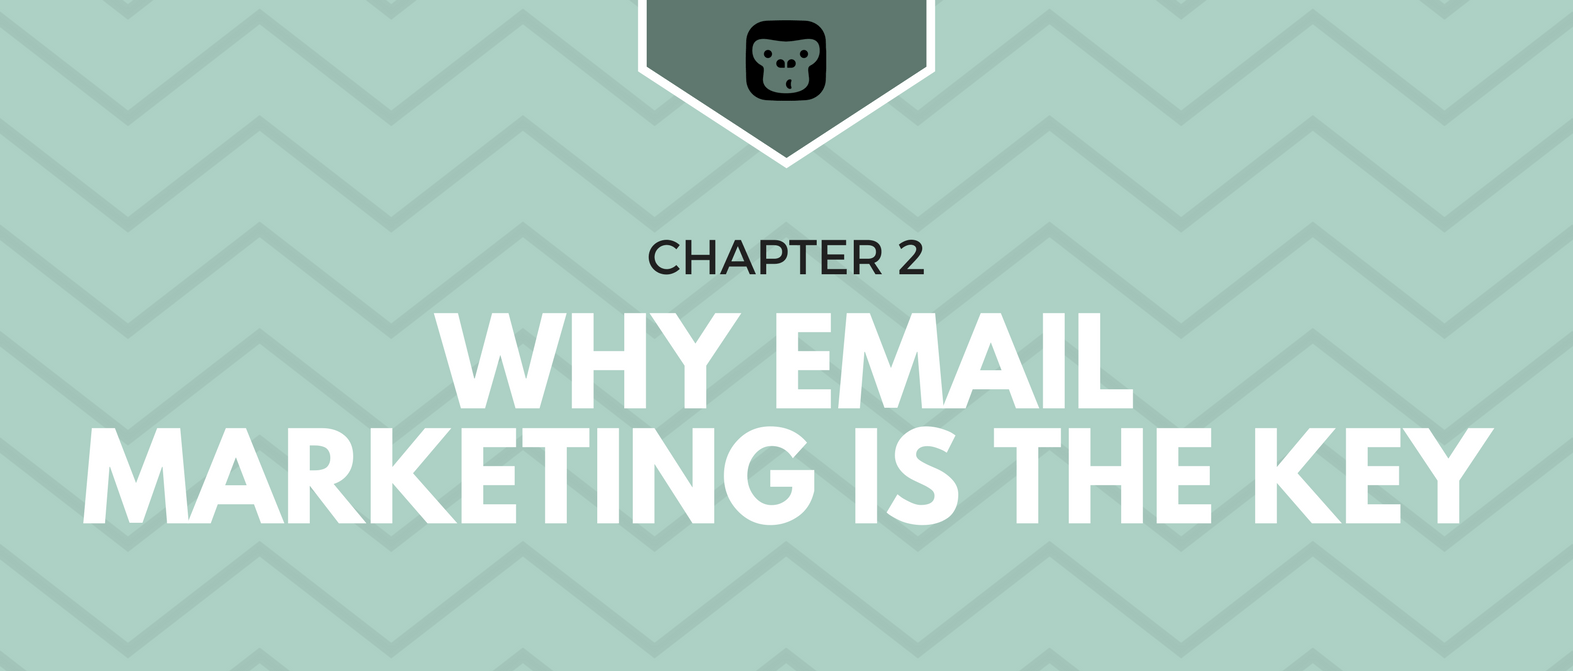 Email marketing benefits and importance